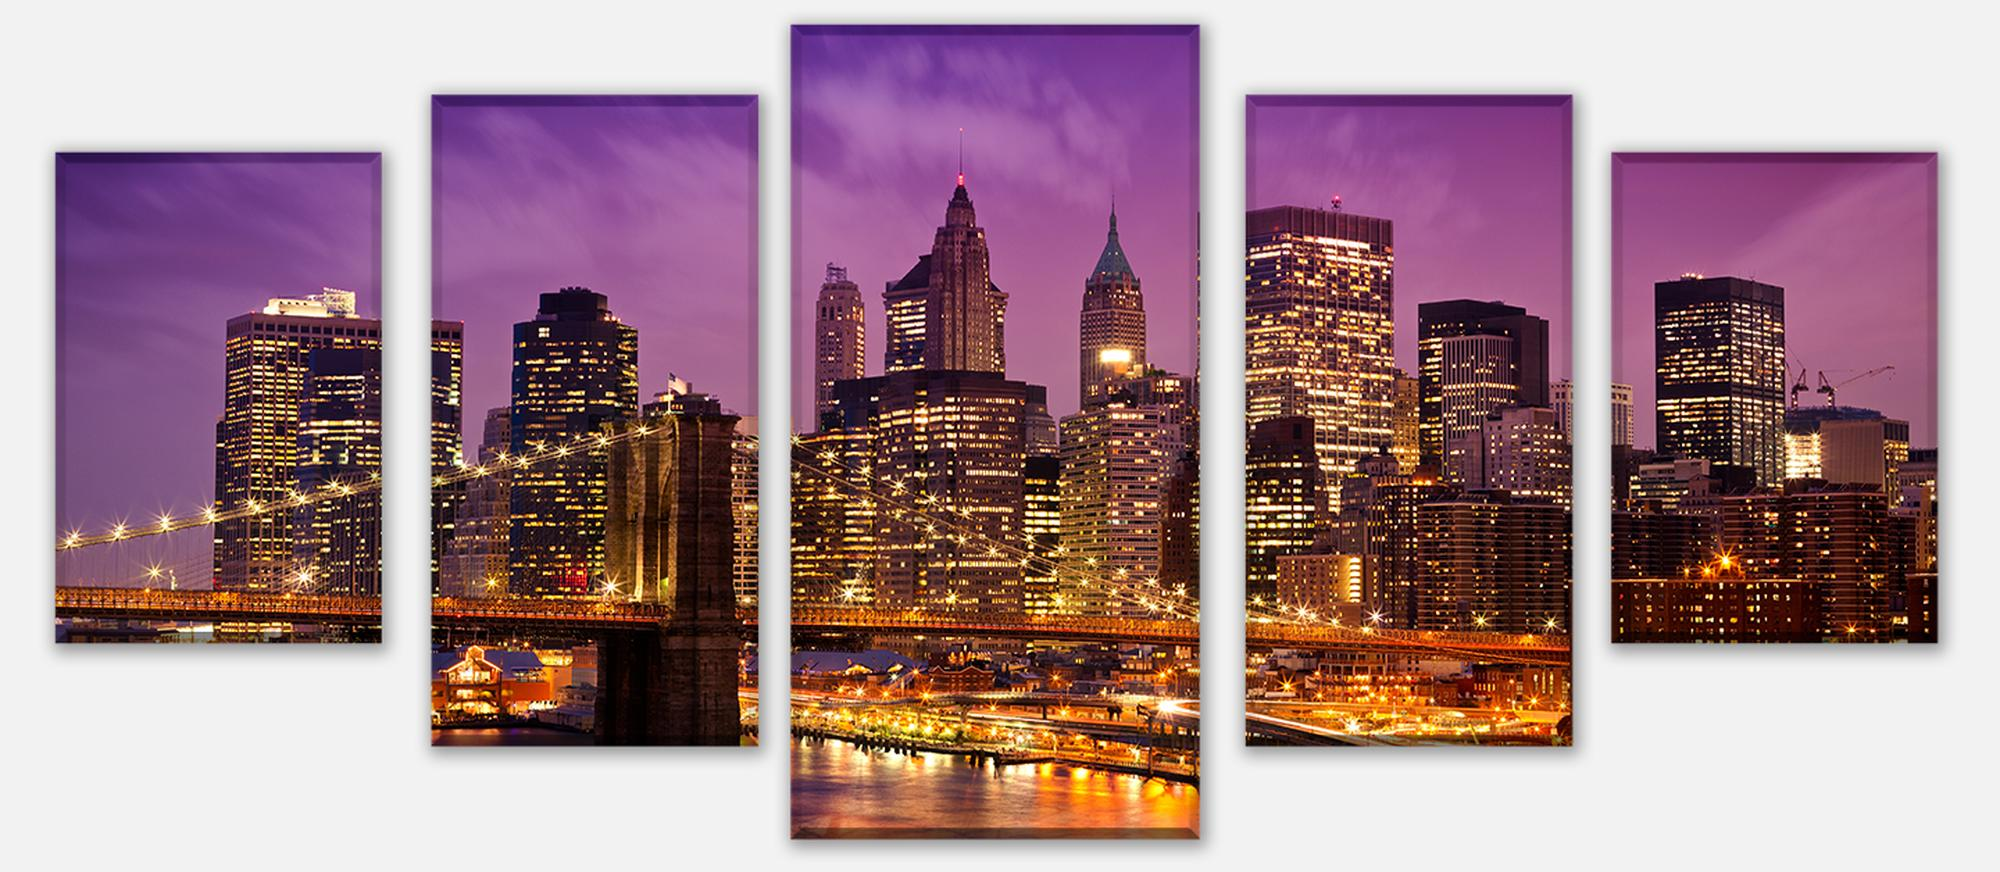 wandmotiv24 leinwandbild mehrteilig new york bei nacht m0178 st dte fototapeten g nstig kaufen. Black Bedroom Furniture Sets. Home Design Ideas